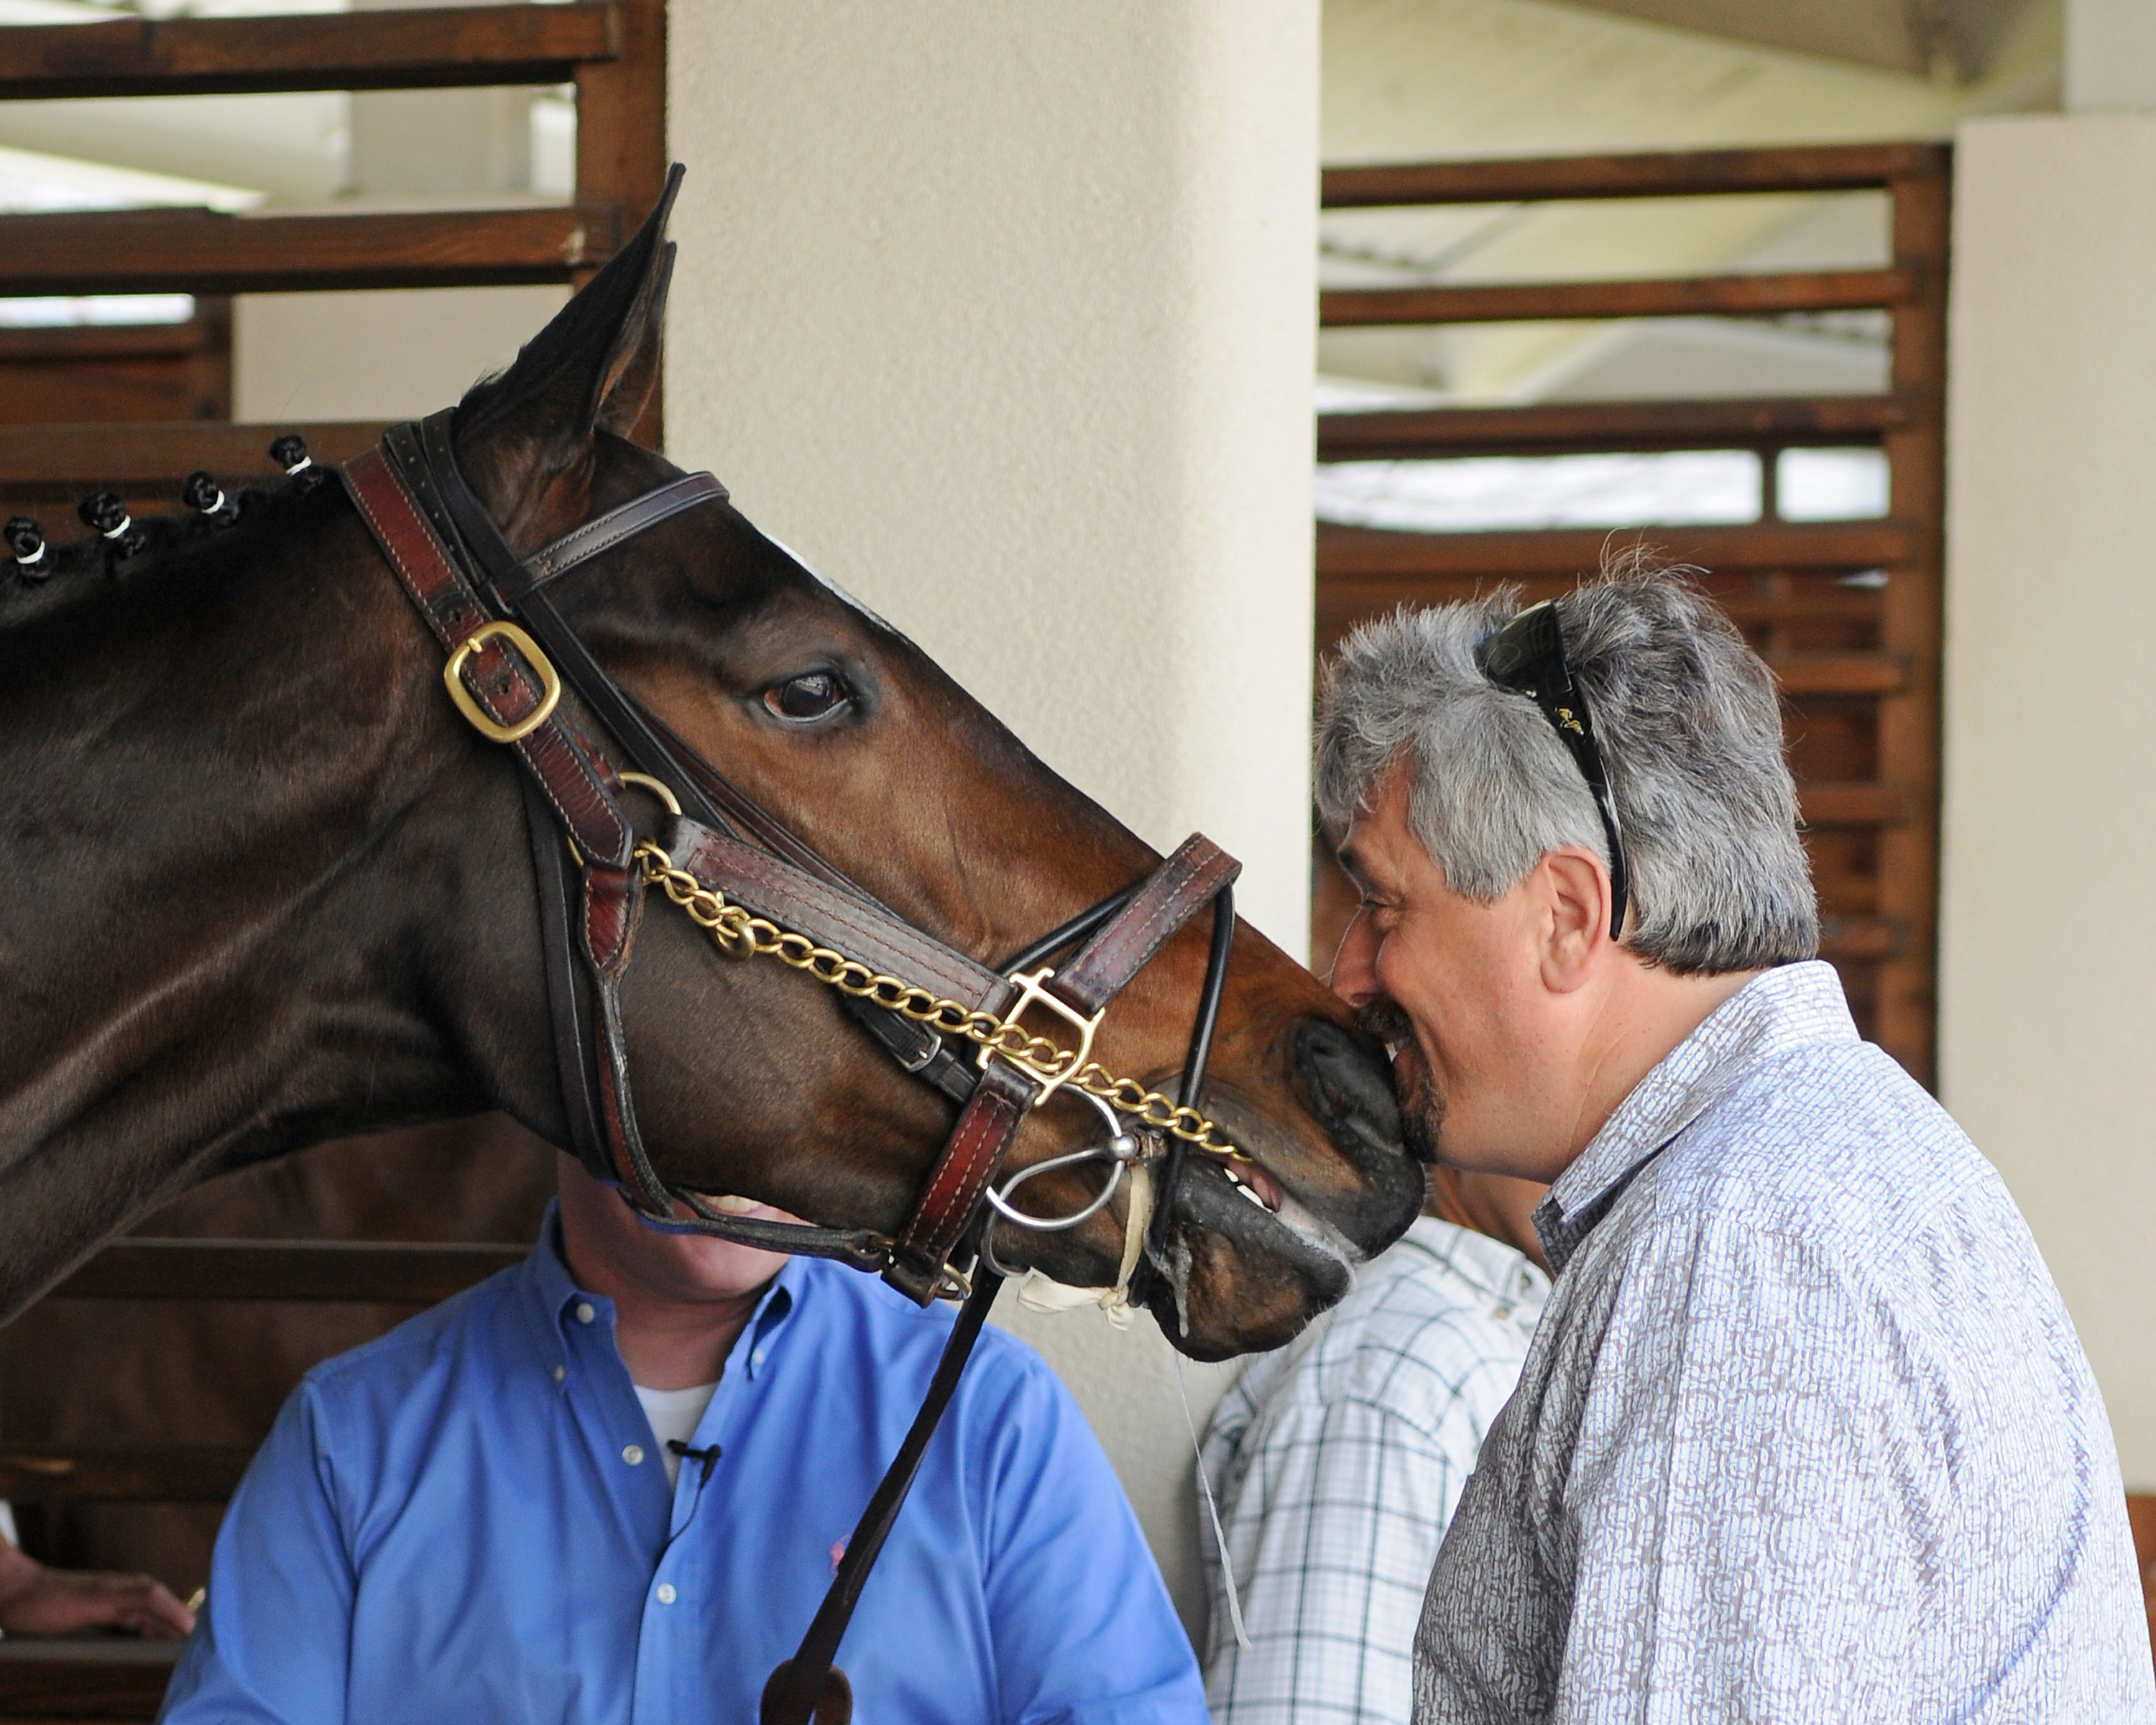 FILE - In this March 12, 2010, file photo trainer Steve Asmussen nuzzles Horse of the Year, Rachel Alexandra in the paddock of the Fair Grounds Race Course in New Orleans. Champion racehorses Rachel Alexandra and Zenyatta, jockey Ramon Dominguez and train